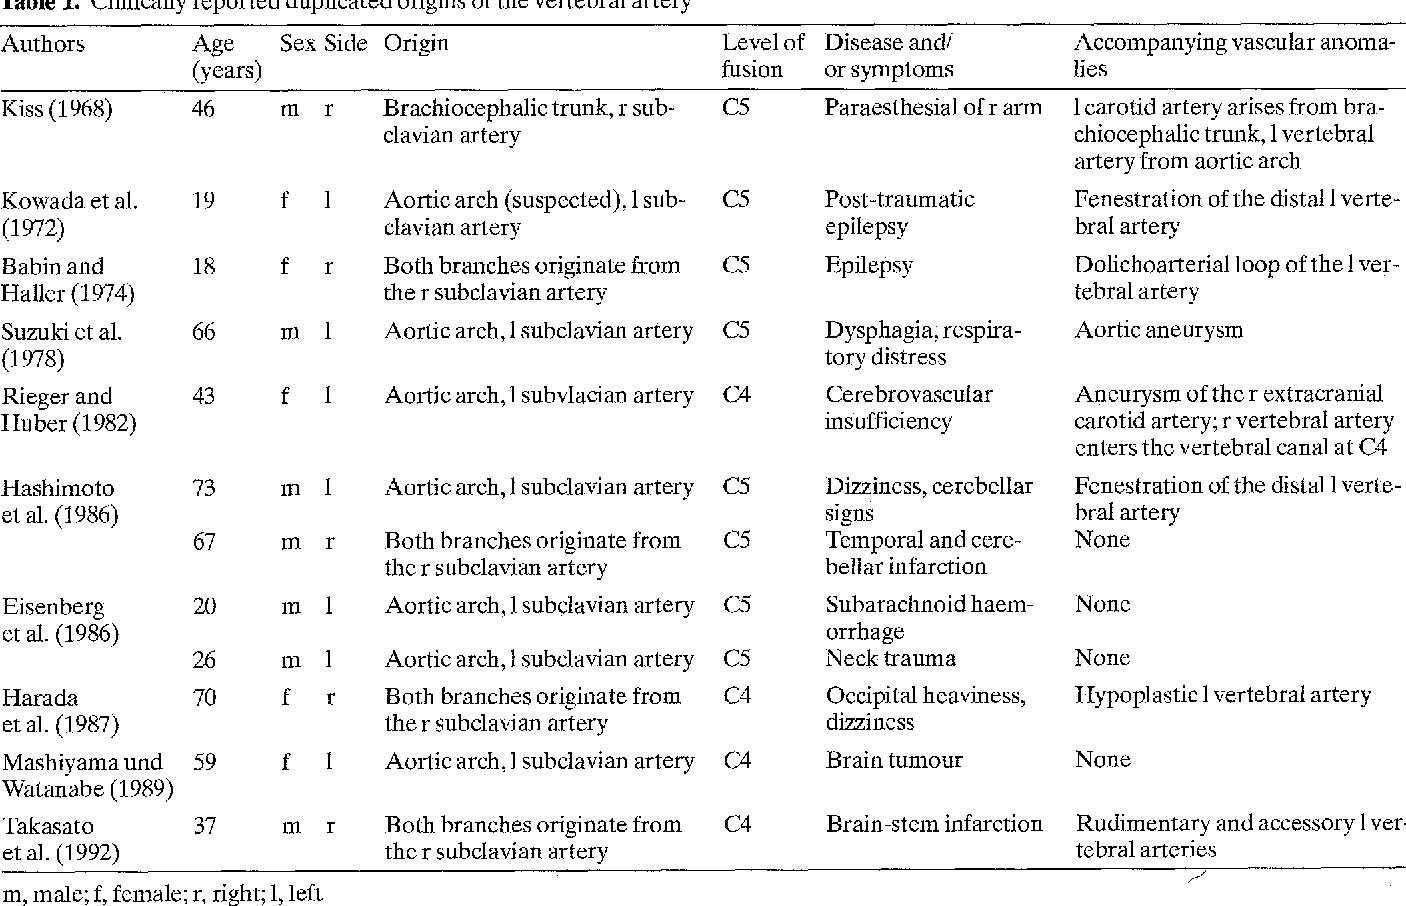 Duplicated Origin Of Right Vertebral Artery With Rudimentary And